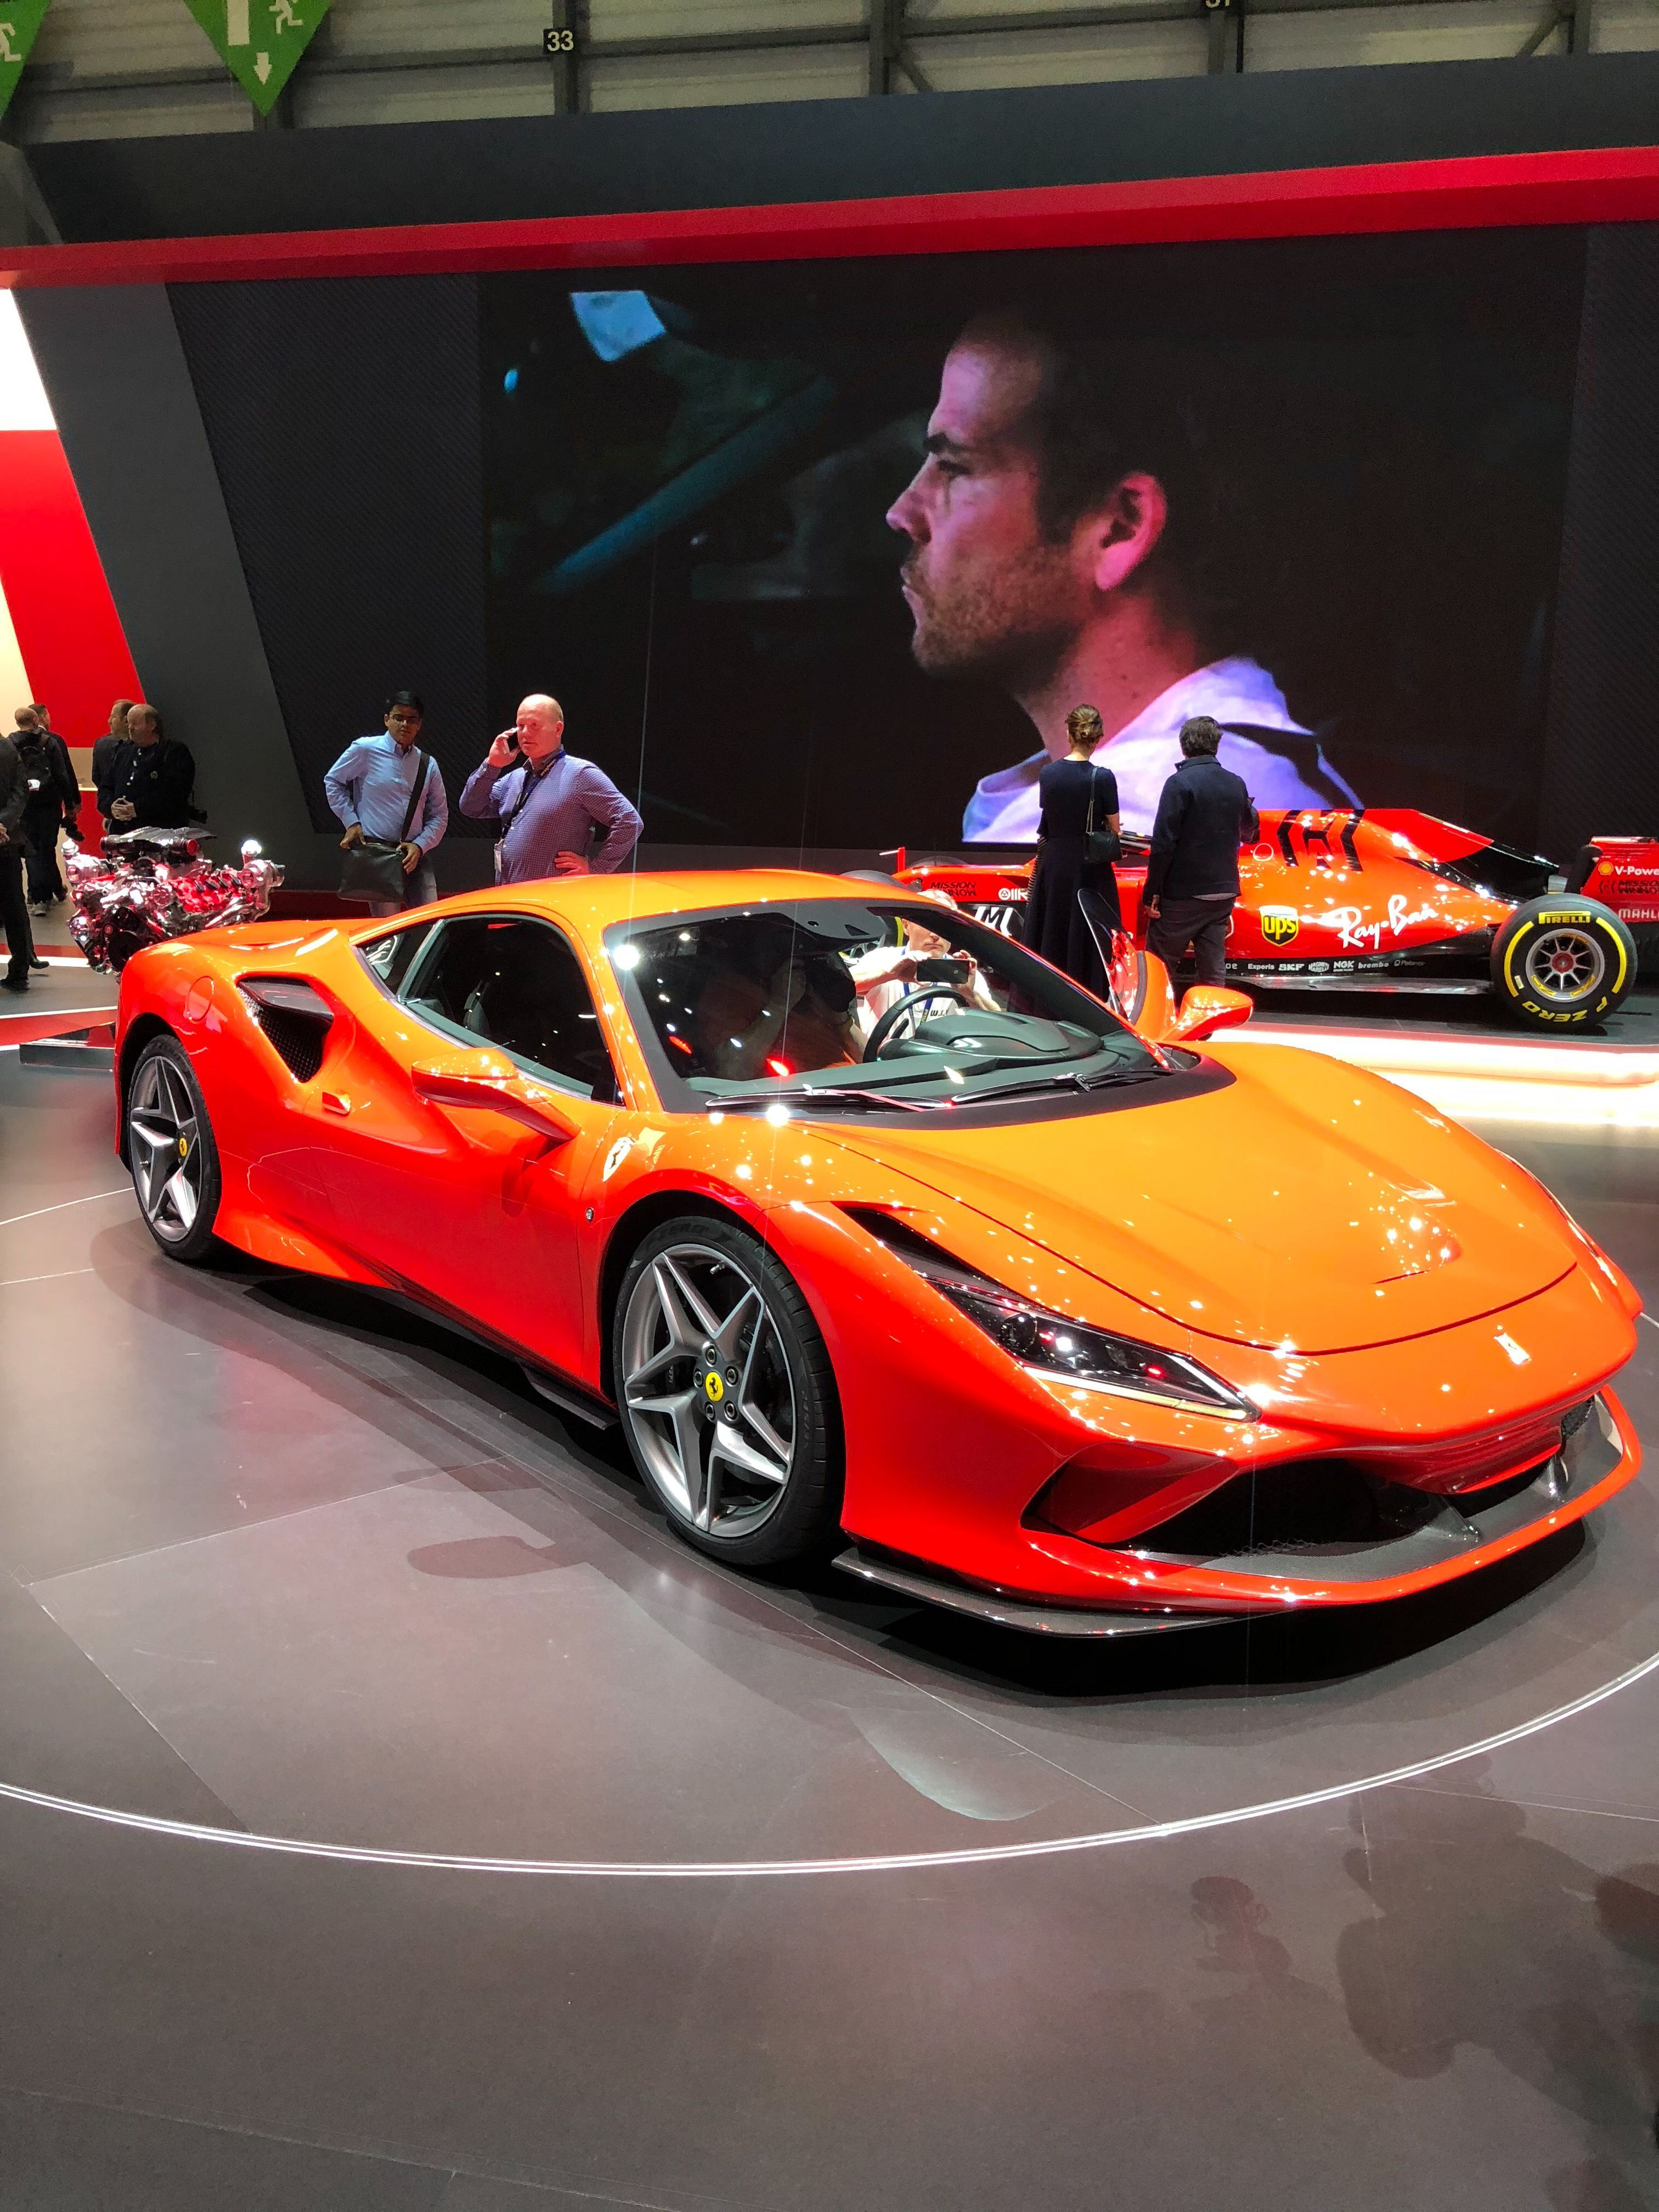 2020 Ferrari F8 Tributo Review Pricing And Specs Expensive Sports Cars Sports Car New Sports Cars